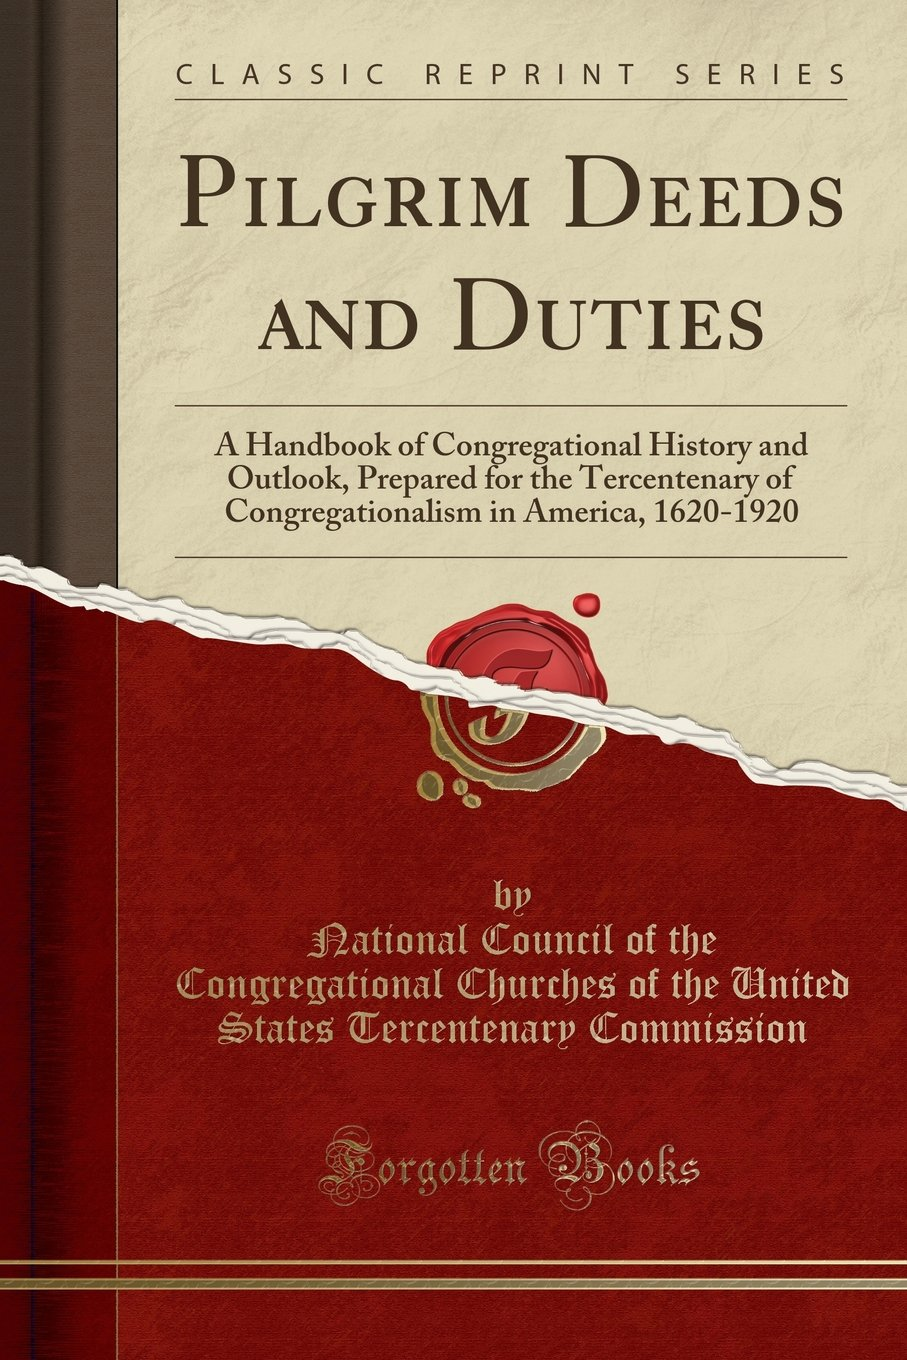 Pilgrim Deeds and Duties: A Handbook of Congregational History and Outlook, Prepared for the Tercentenary of Congregationalism in America, 1620-1920 (Classic Reprint) pdf epub